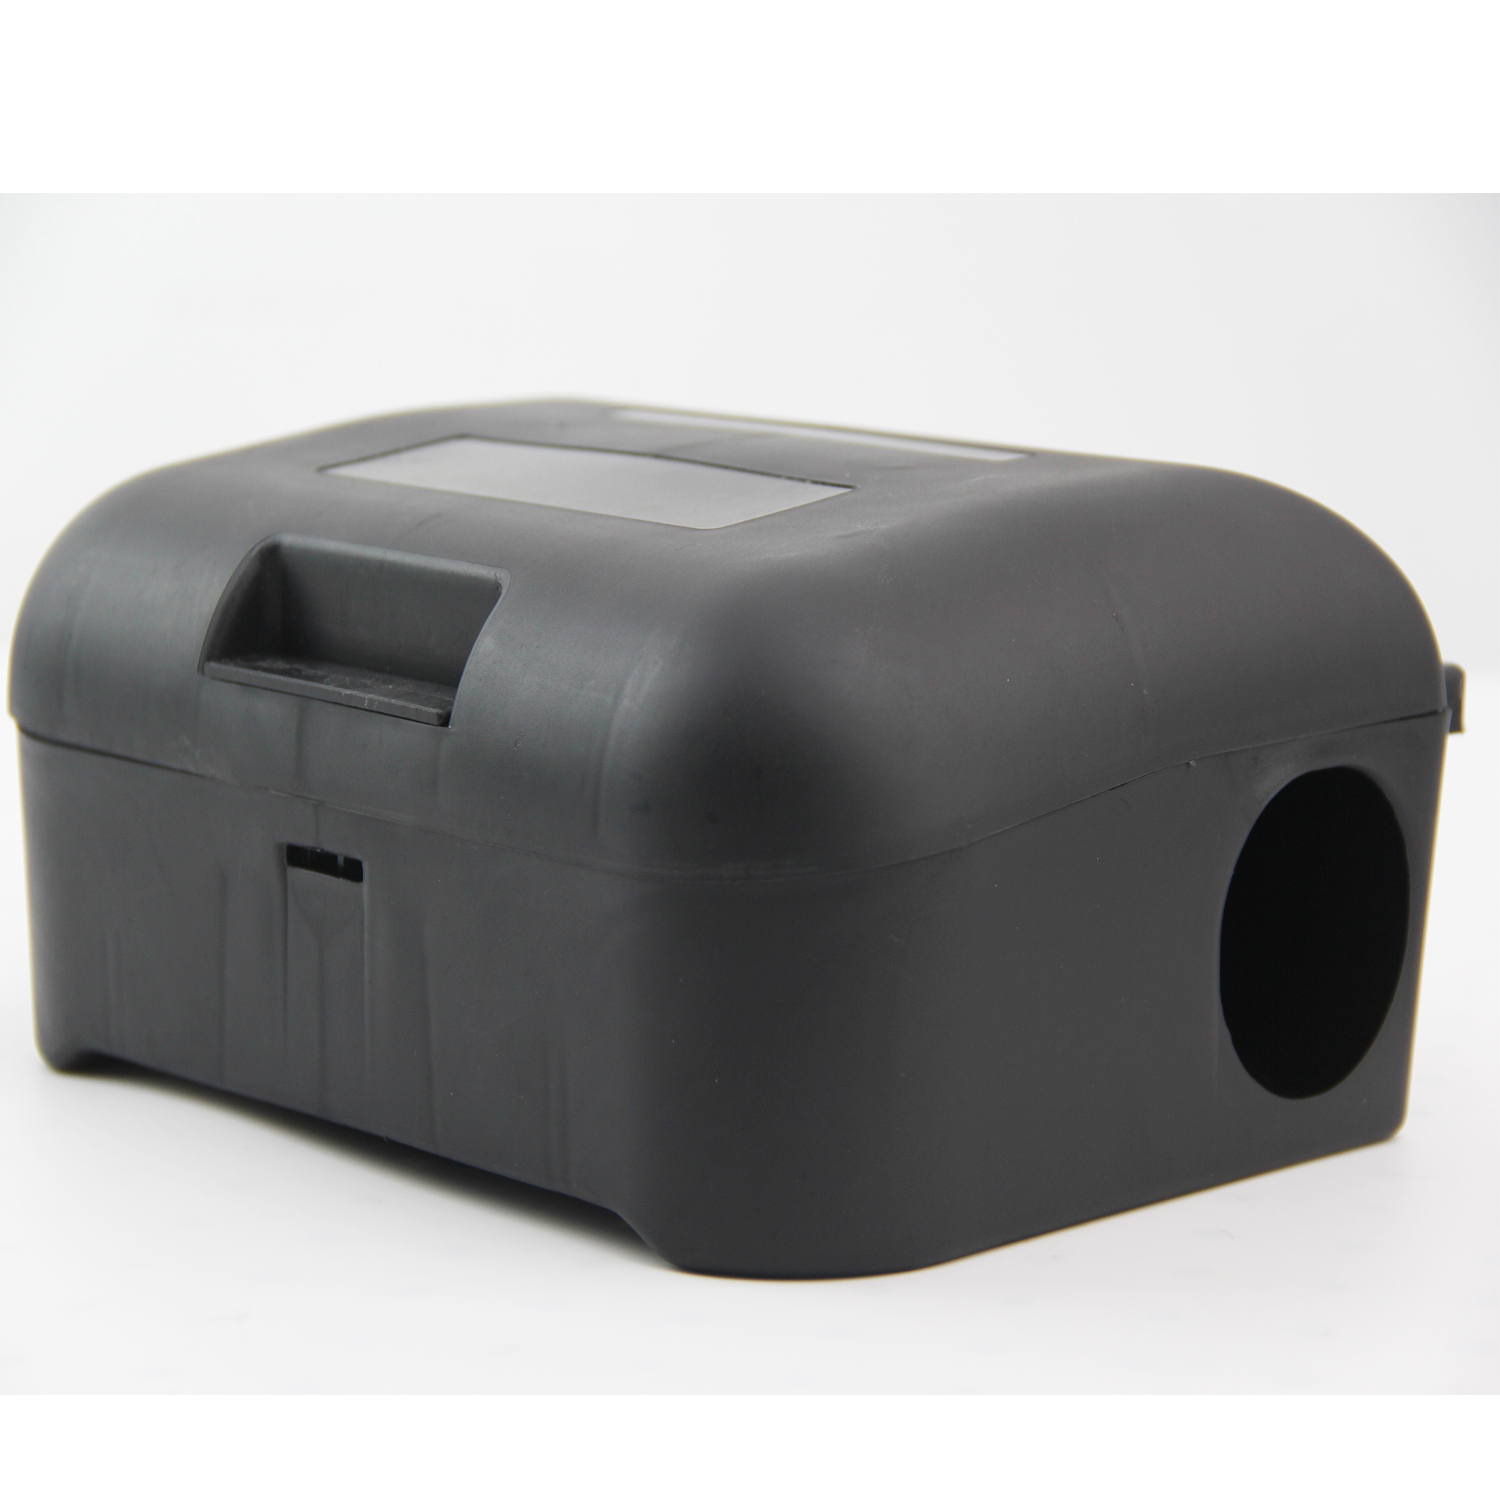 Haierc Wholesale New Outdoor Rodent Bait Station Mouse & Rat Control Products Keep Children and Pets Safe